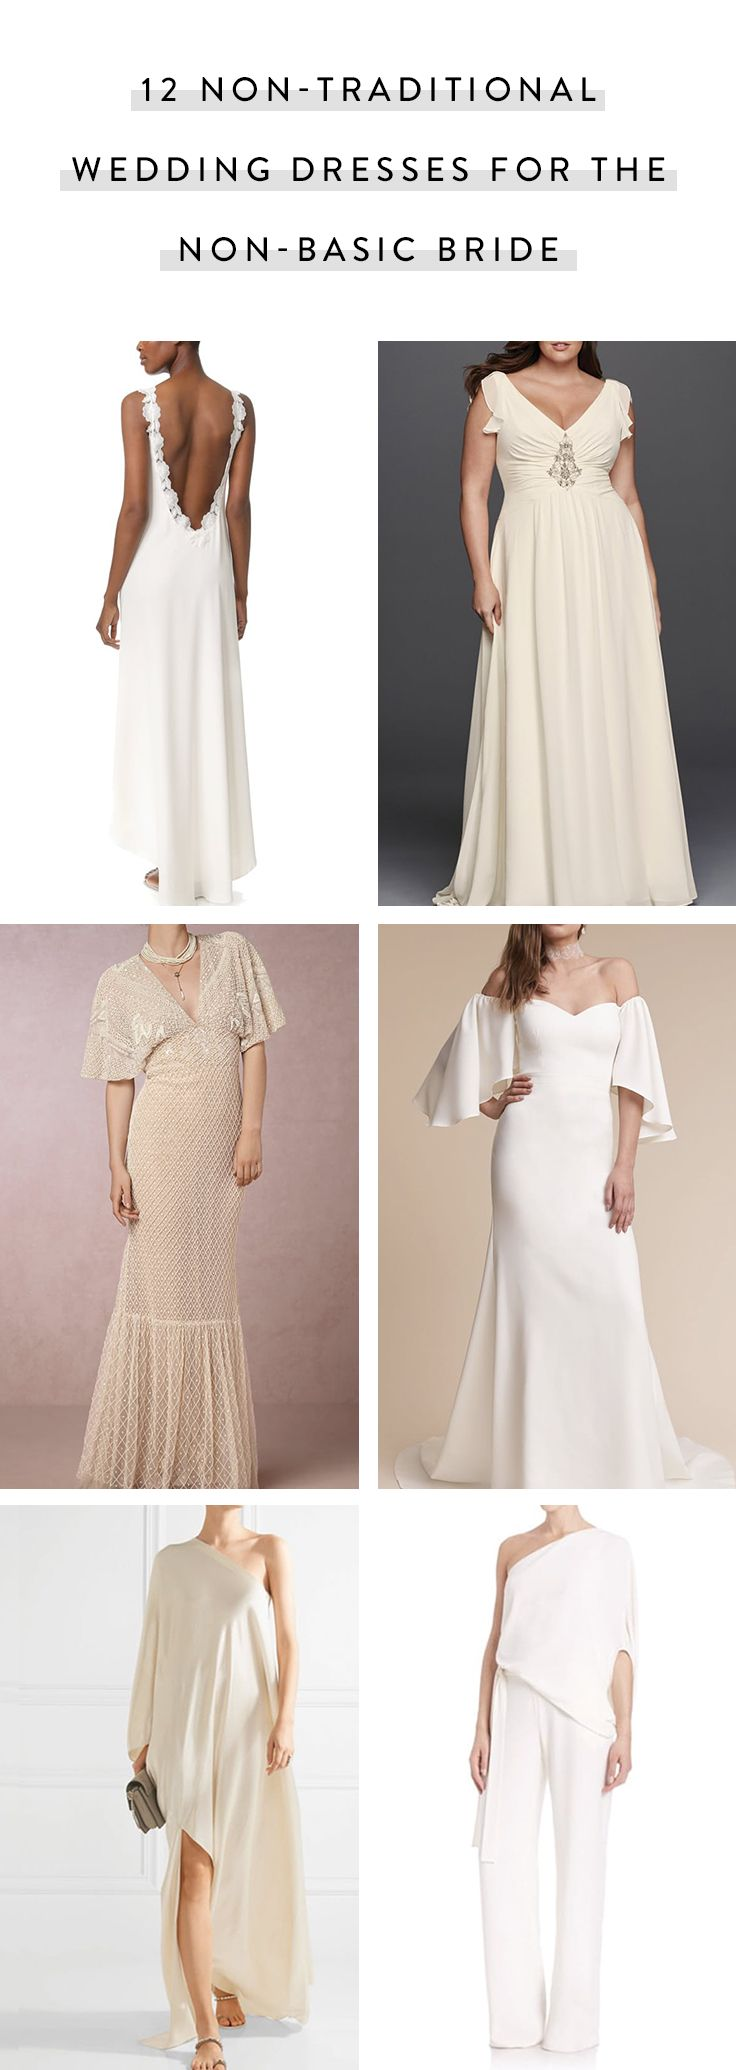 nontraditional wedding dresses for the nonbasic bride wedding